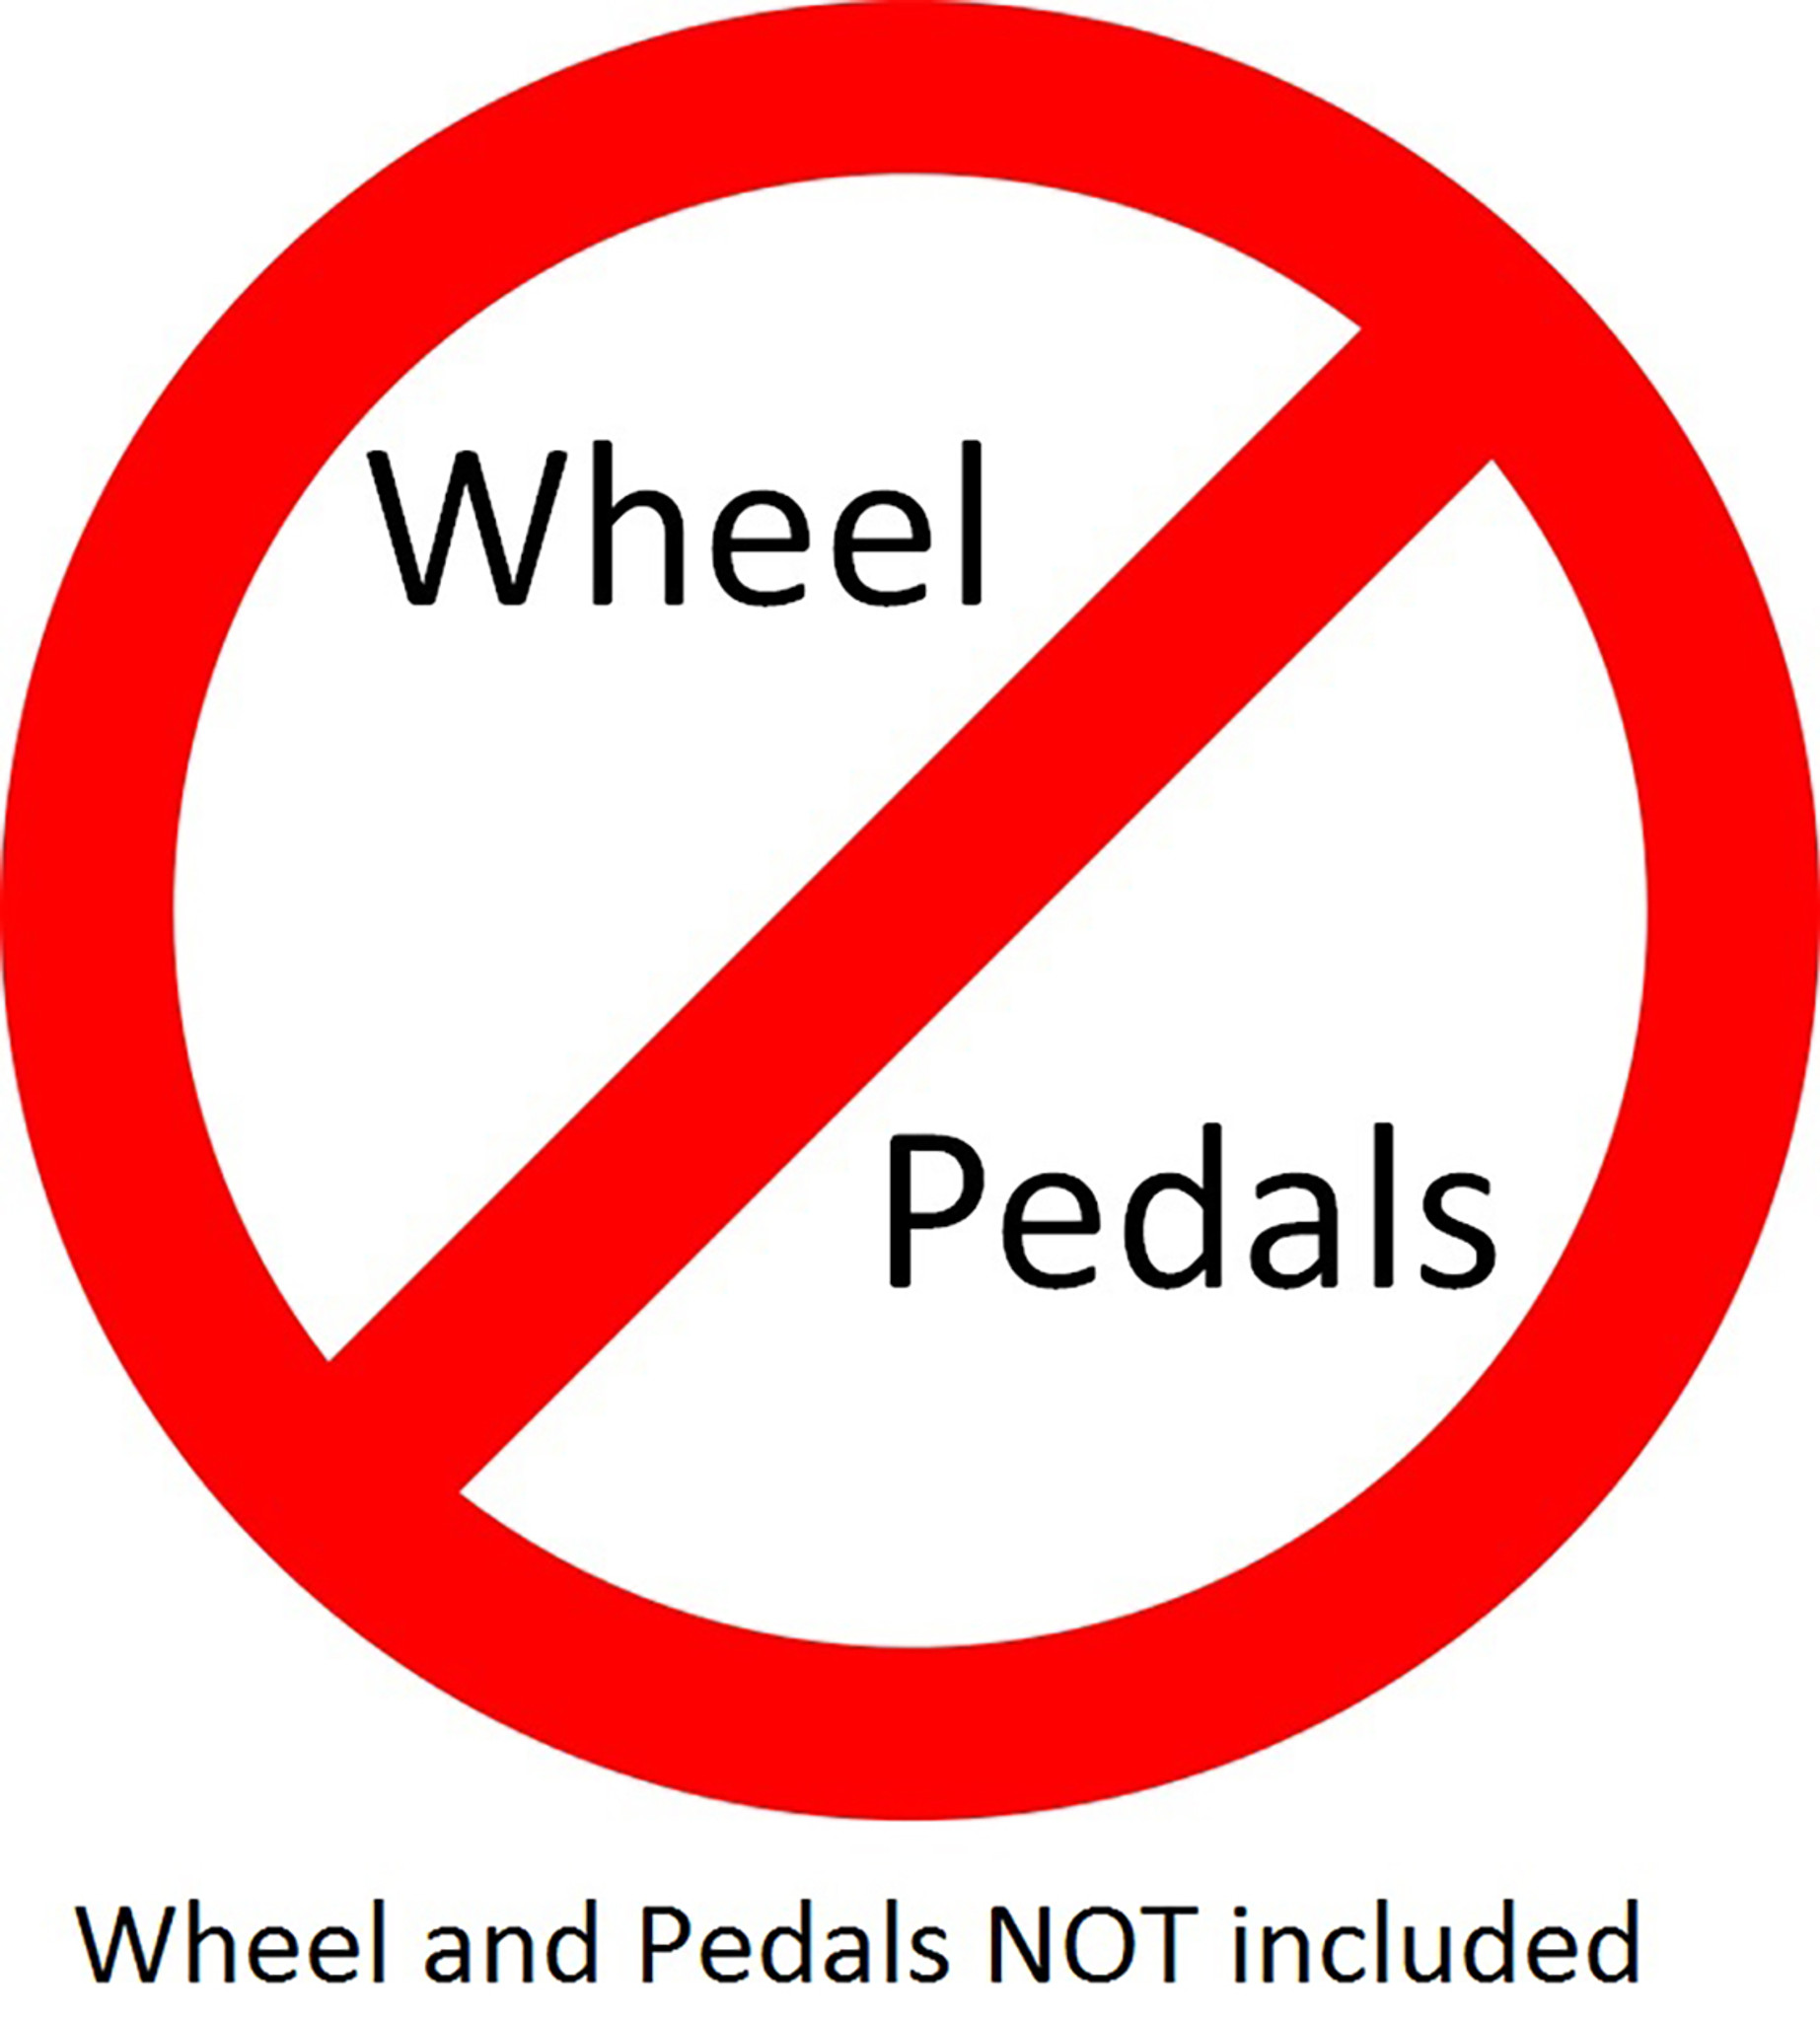 Wheel Stand Pro G Deluxe Compatible With Logitech G27/G25/G29/G920 wheels   Deluxe V2  Wheel and Pedals not included